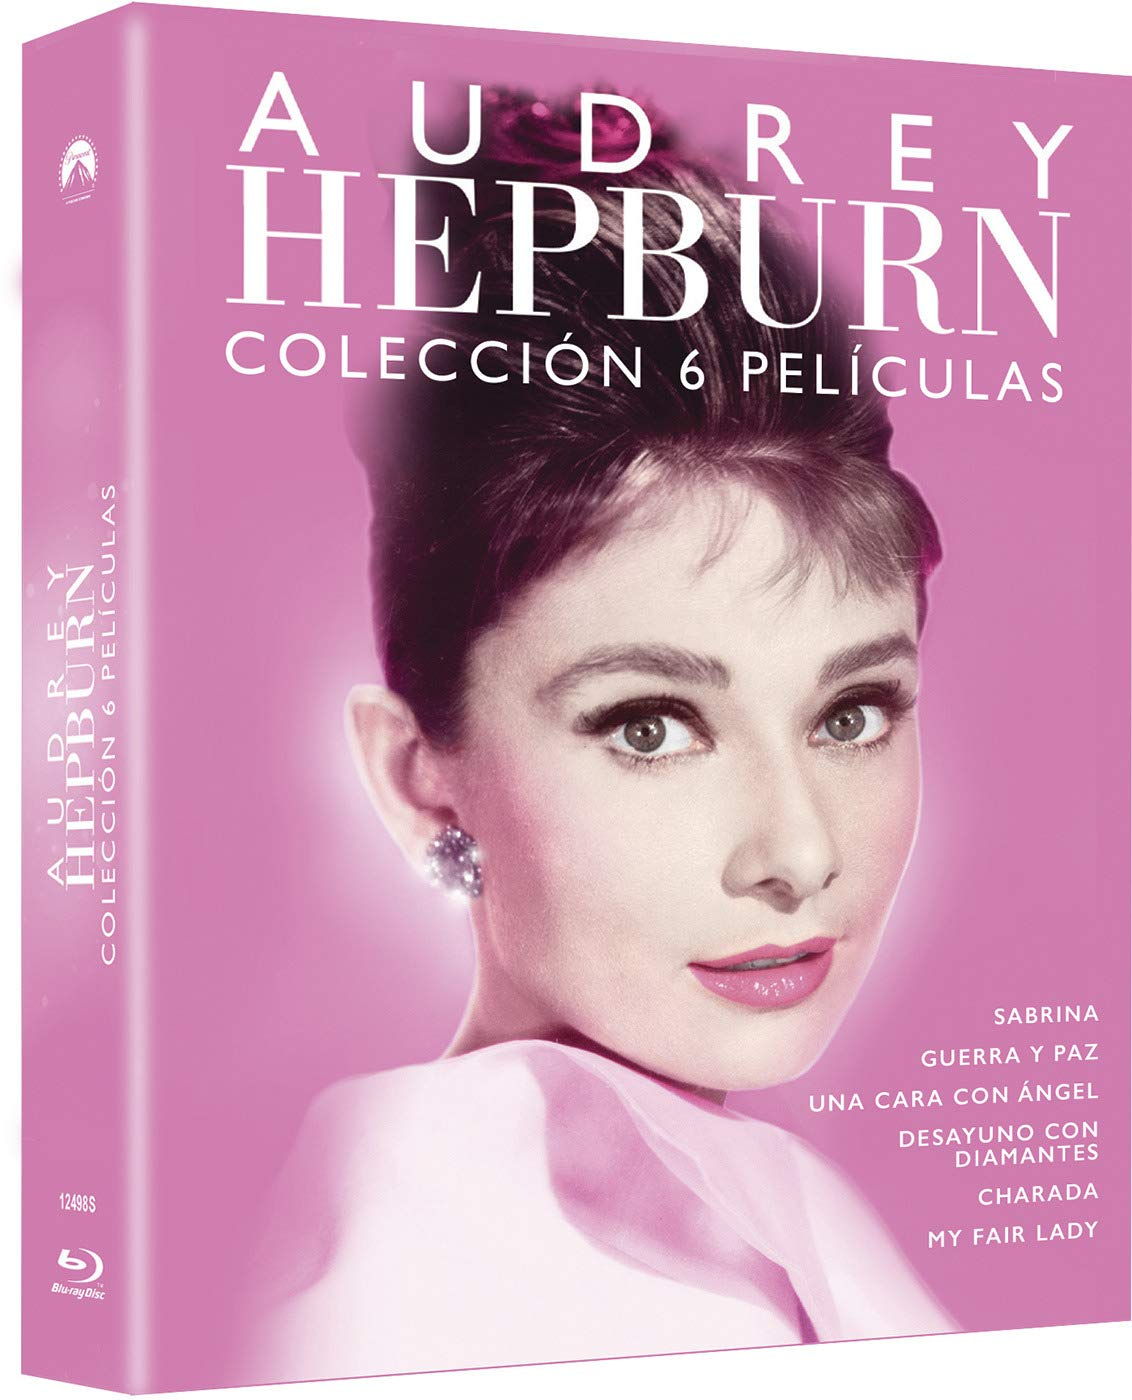 Pack Audrey Hepburn (BD - 6 discos) [Blu-ray]: Amazon.es: Audrey Hepburn, Humphrey Bogart, Fred Astaire, Cary Grant, Vv.Aa, Audrey Hepburn, Humphrey Bogart, Paramount Pictures, Universal Pictures: Cine y Series TV